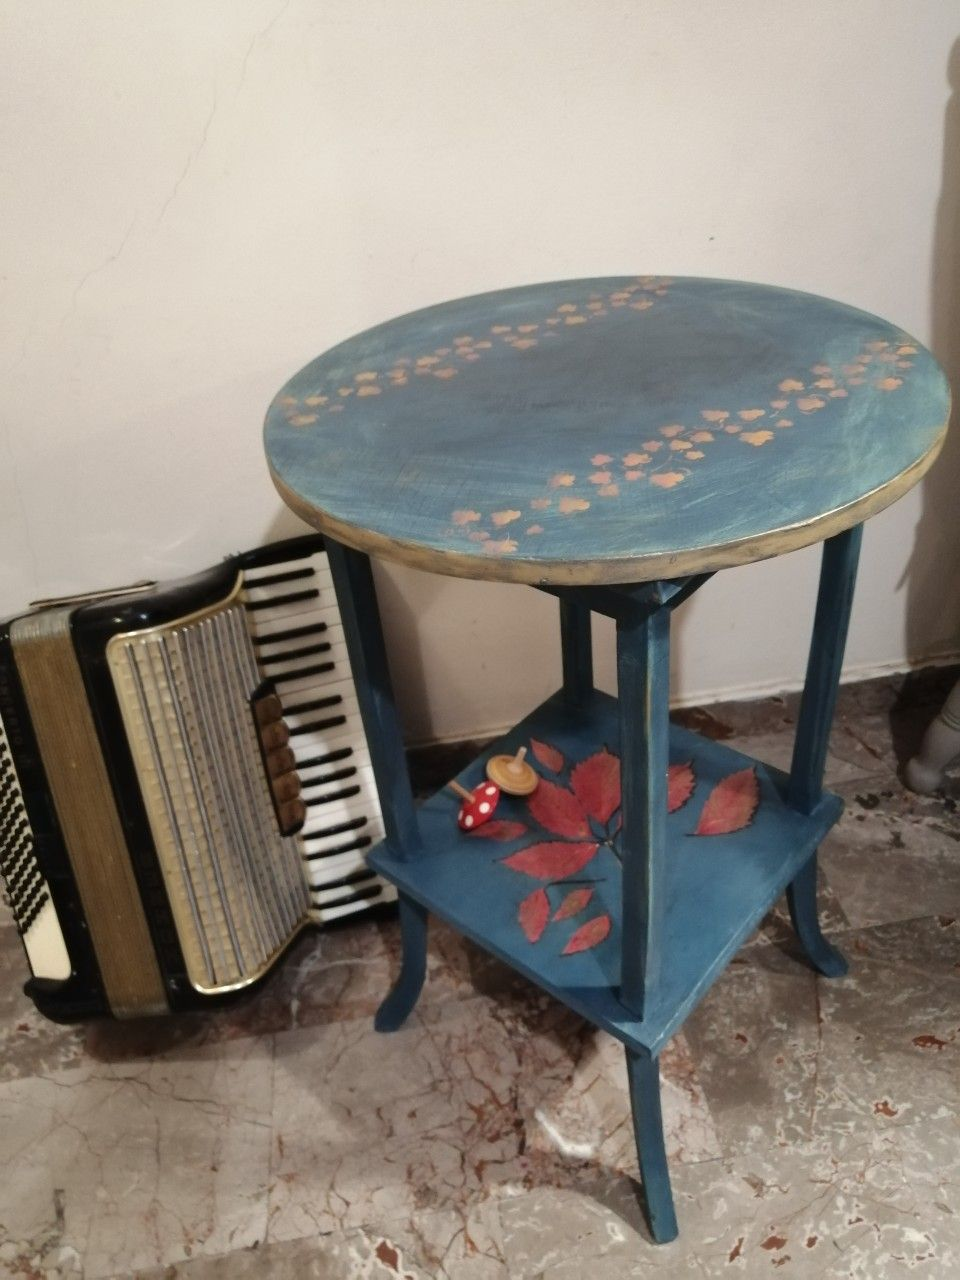 An Original Athenian Plant Stand Coffee Table From The 50s